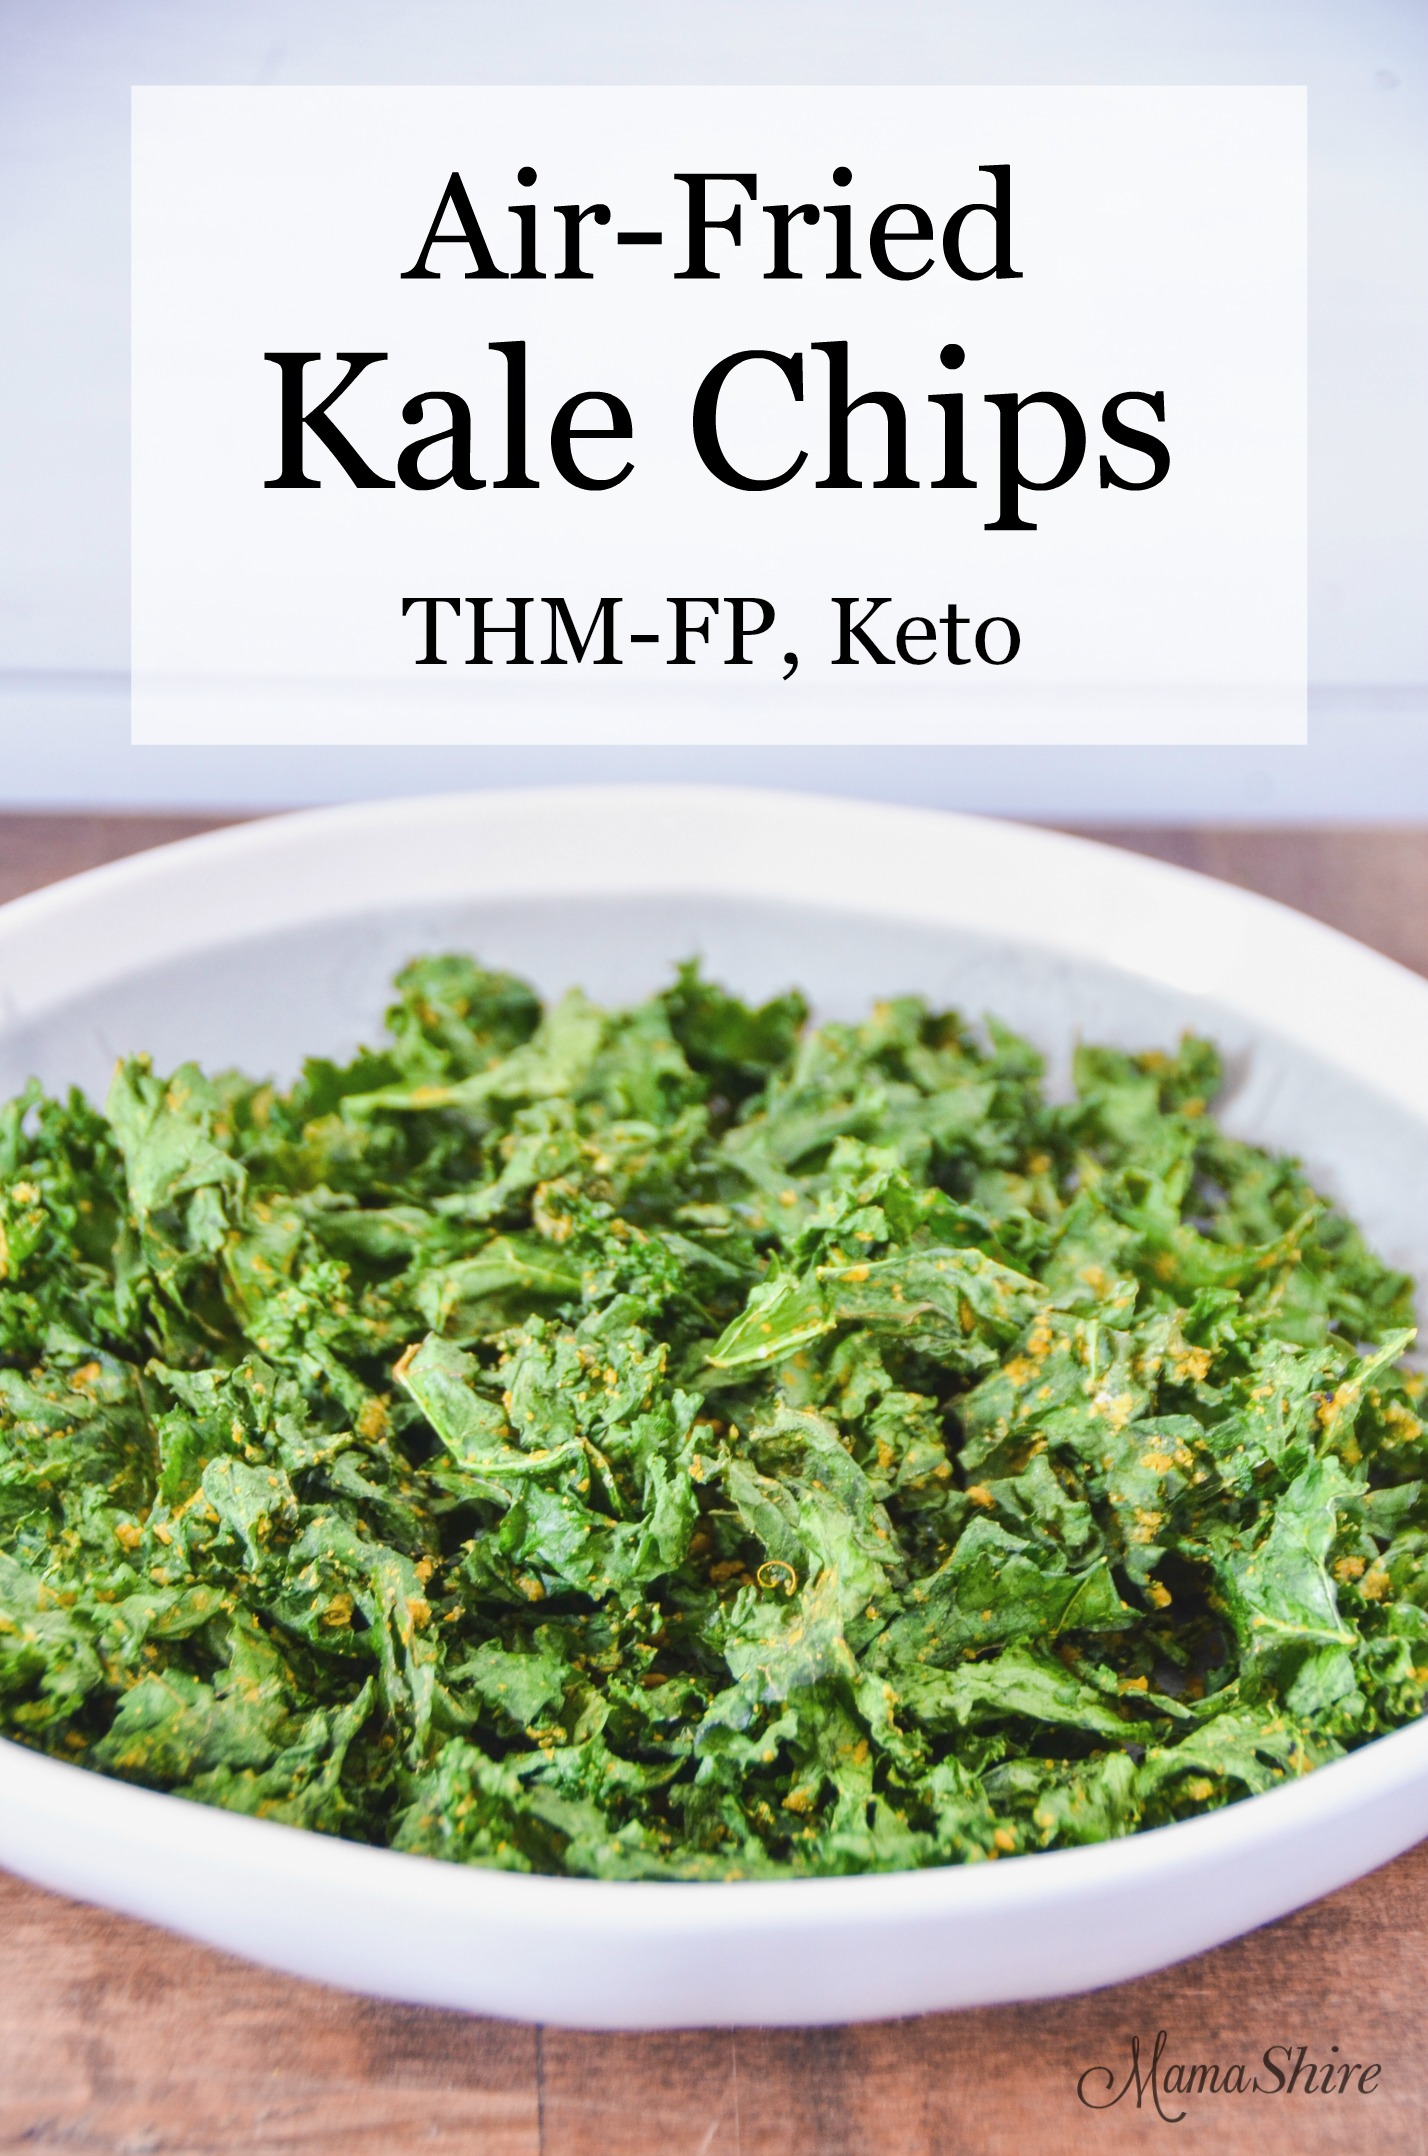 Air-Fried Kale Chips in a serving bowl.